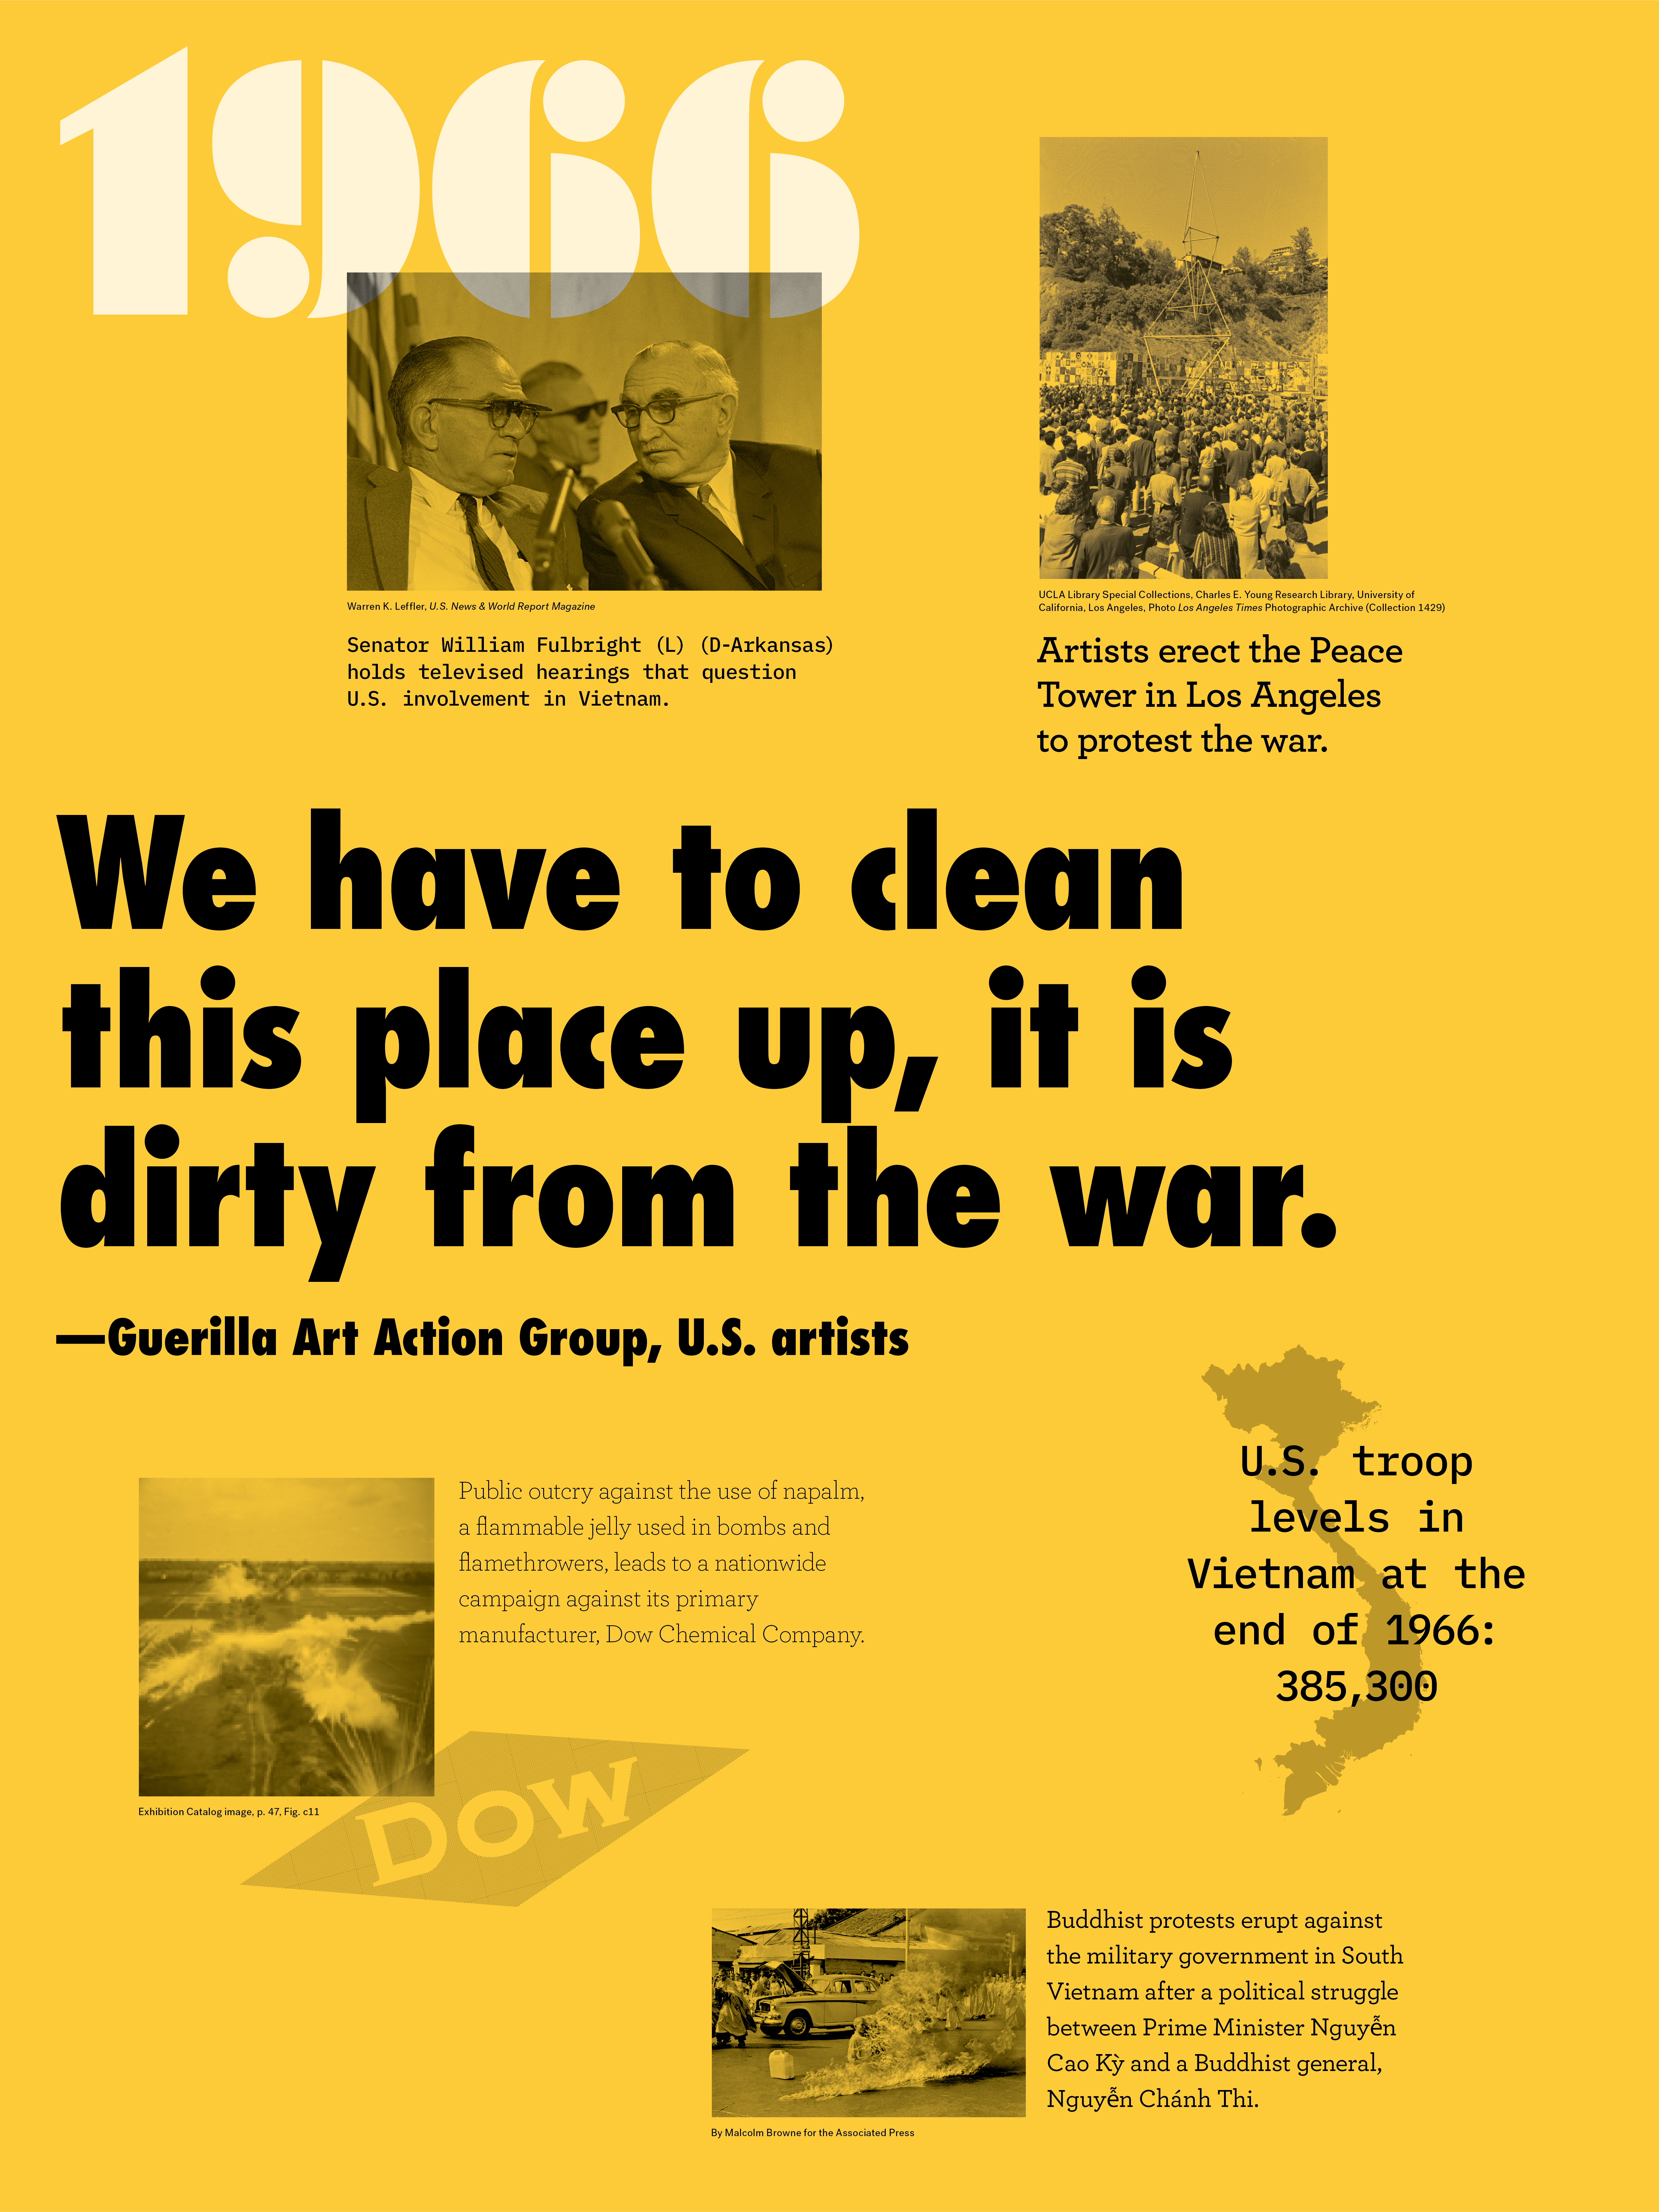 "Year:1966 Quote/headlines:""We have to clean this place up, it is dirty from the war.""-Guerilla Art Action Group, U.S. artists Event:Picture of U.S. senators Image description: Senator William Fulbright (L) (D-Arkansas) holds televised hearings that question U.S. involvement in Vietnam. Event: Peace tower with audience Image description: Artists erect the Peace Tower in Los Angeles to protest the war. Event: Explosions on field Image description:Public outcry against the use of napalm, a flammable jelly used in bombs and flamethrowers, leads to a nationwide campaign against its primary manufacturer, Dow Chemical Company Event: Vietnam map Image description: U.S. troop levels in Vietnam at the end of 1966: 365,300 Event:Person is on fire Image description: Buddhist protests erupt against the military government in South Vietnam after a political struggle between Prime Minister Nguyễn Cao Kỳ and a Buddhist general, Nguyễn Chánh Thi."